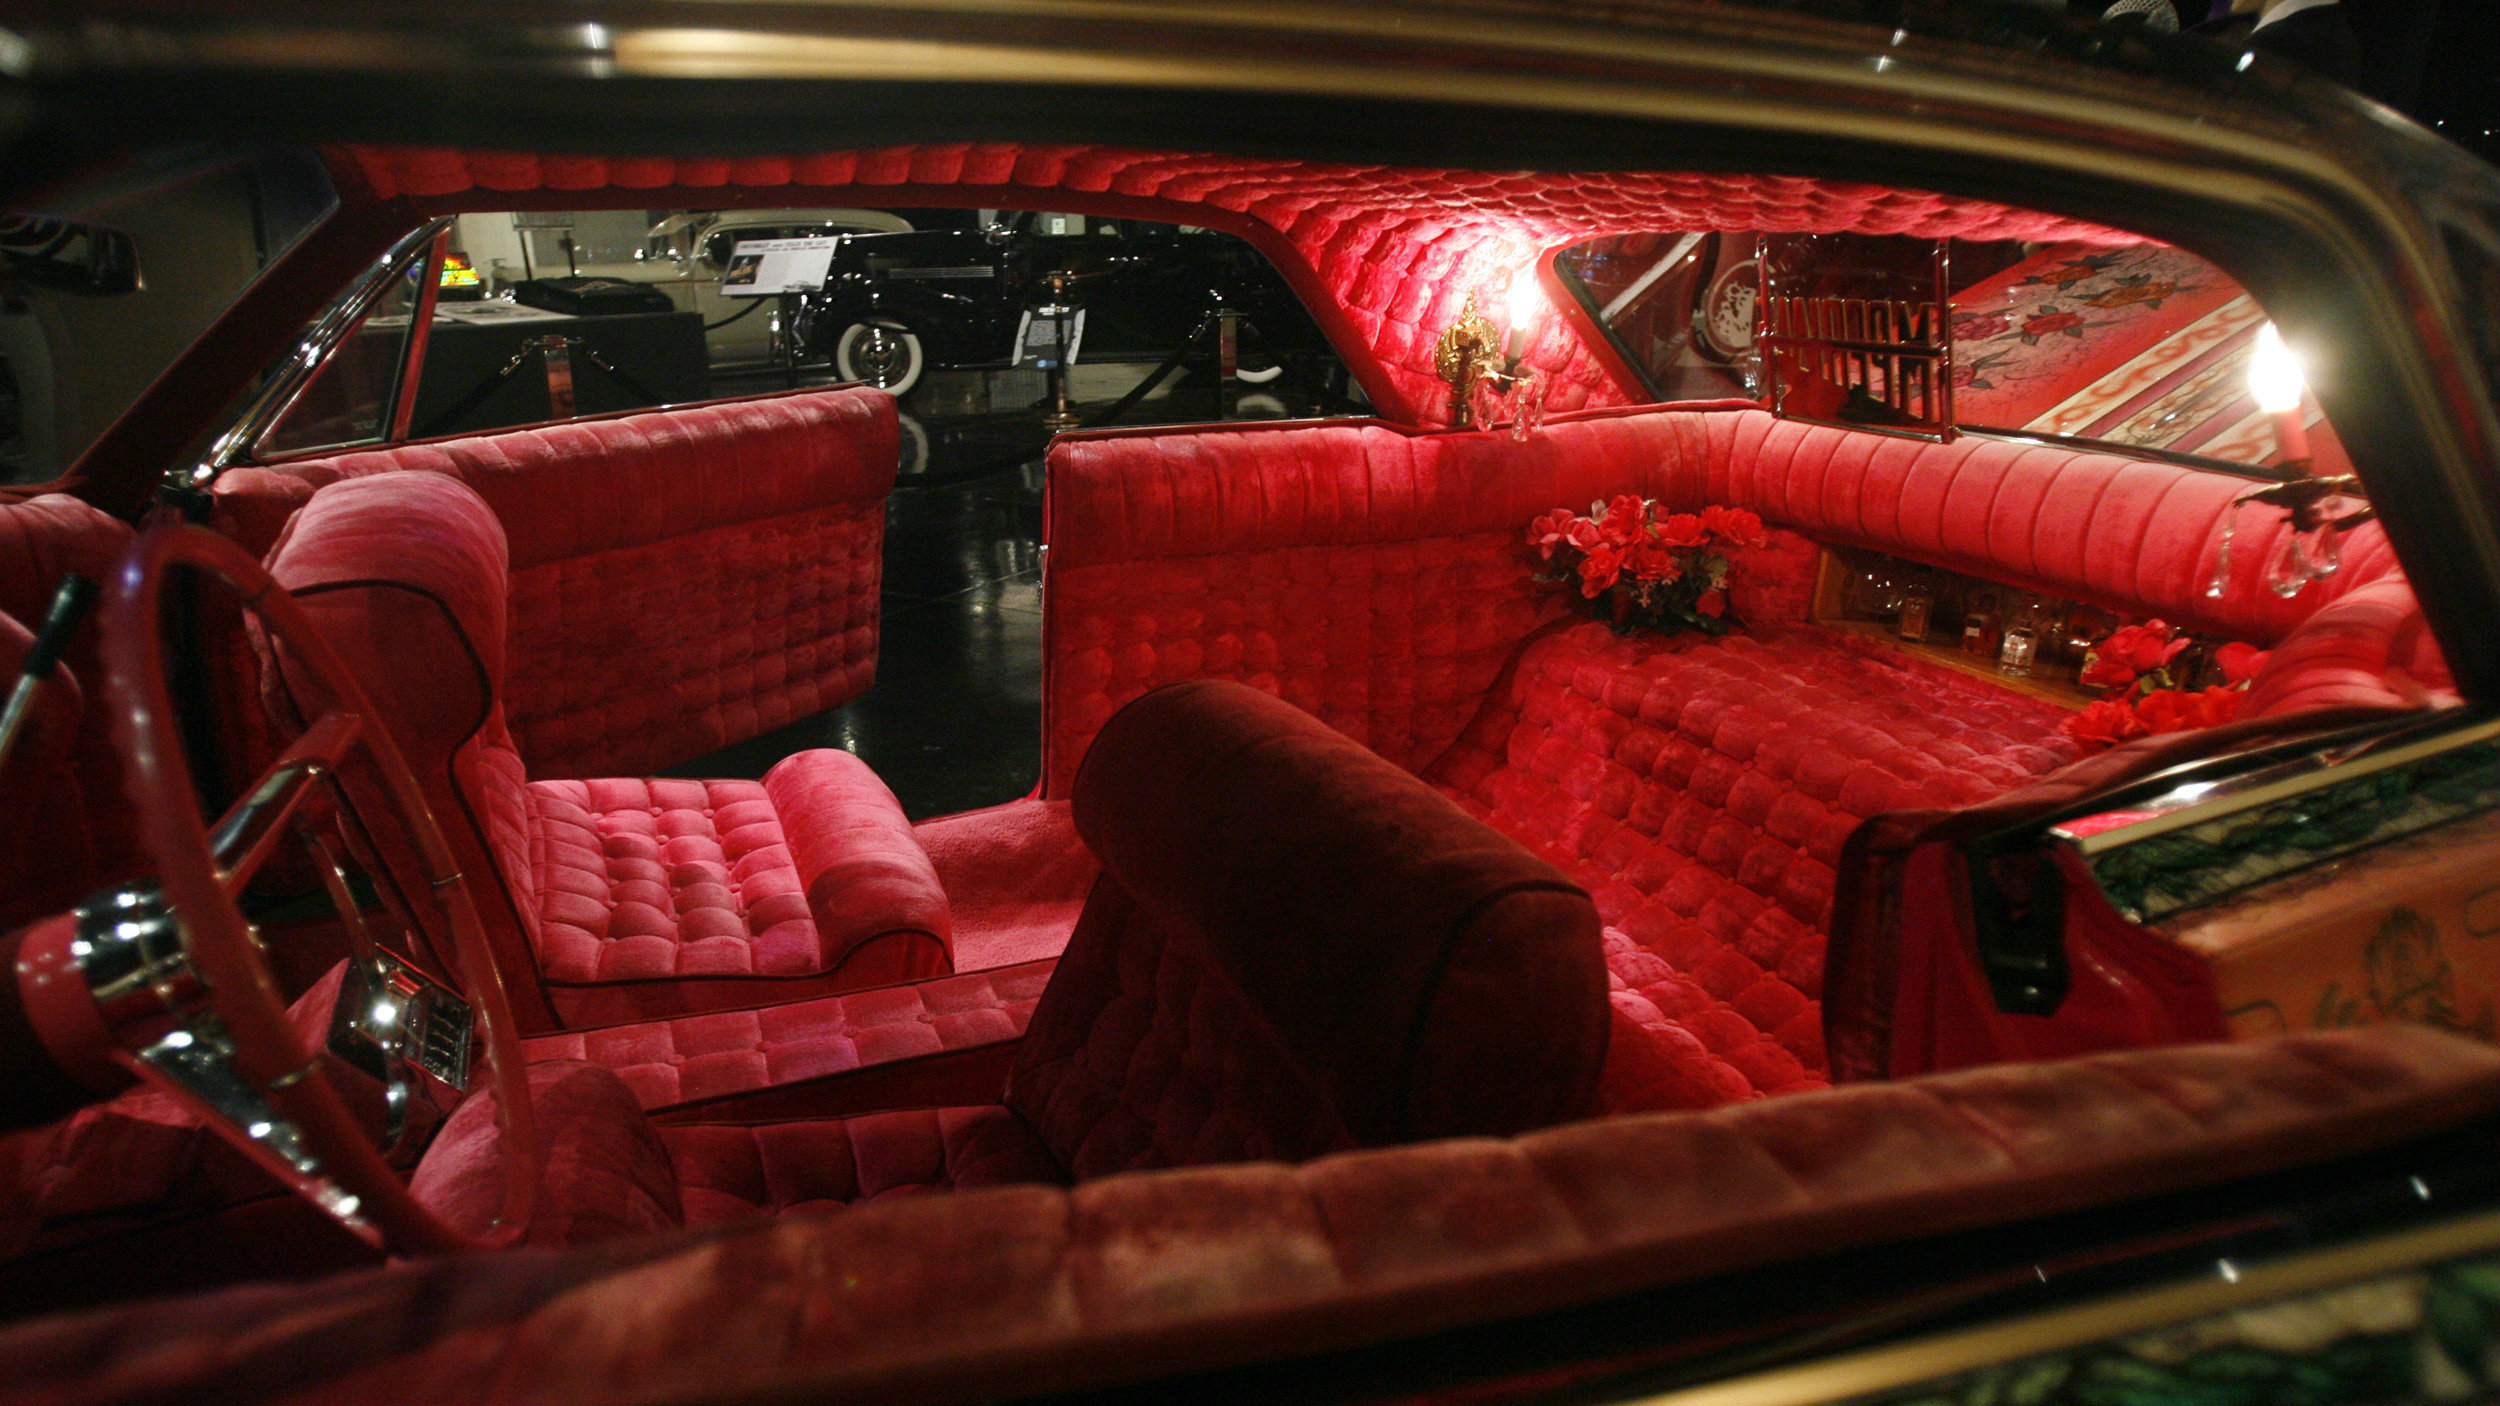 Inside of a customized 1964 Chevy Impala.